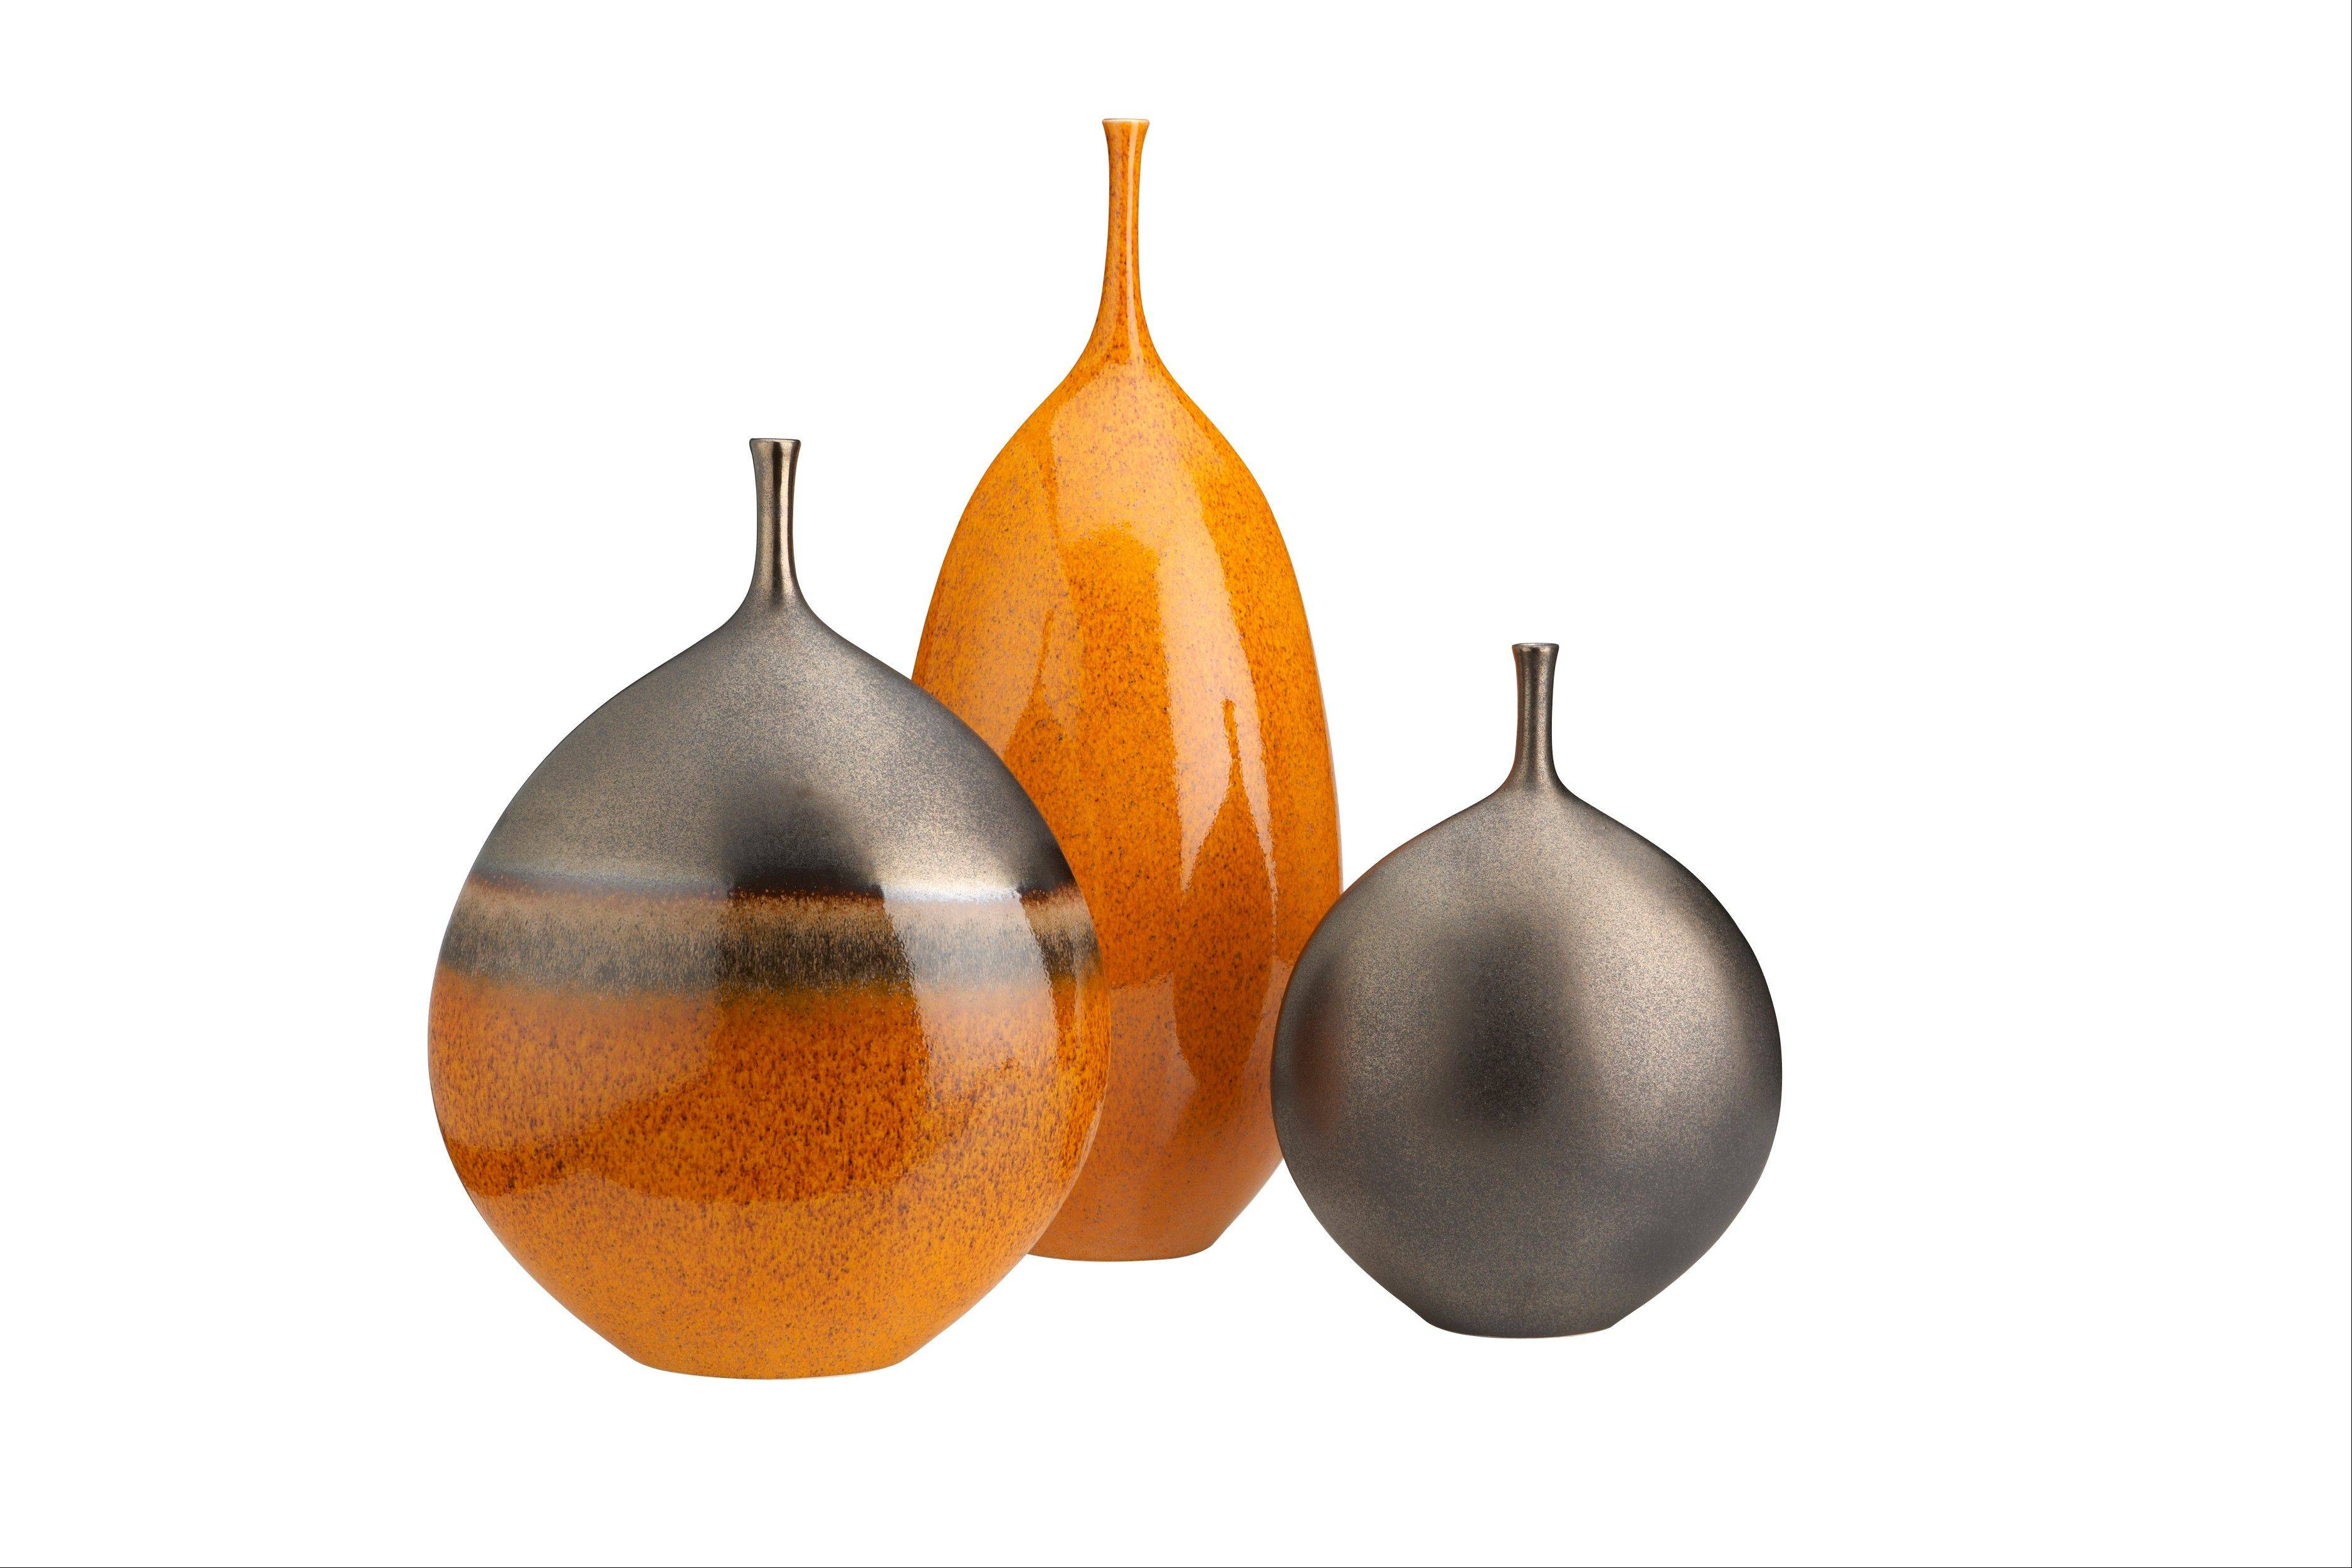 Galeras vases in Portuguese ceramic have an earthy, yet modern vibe.